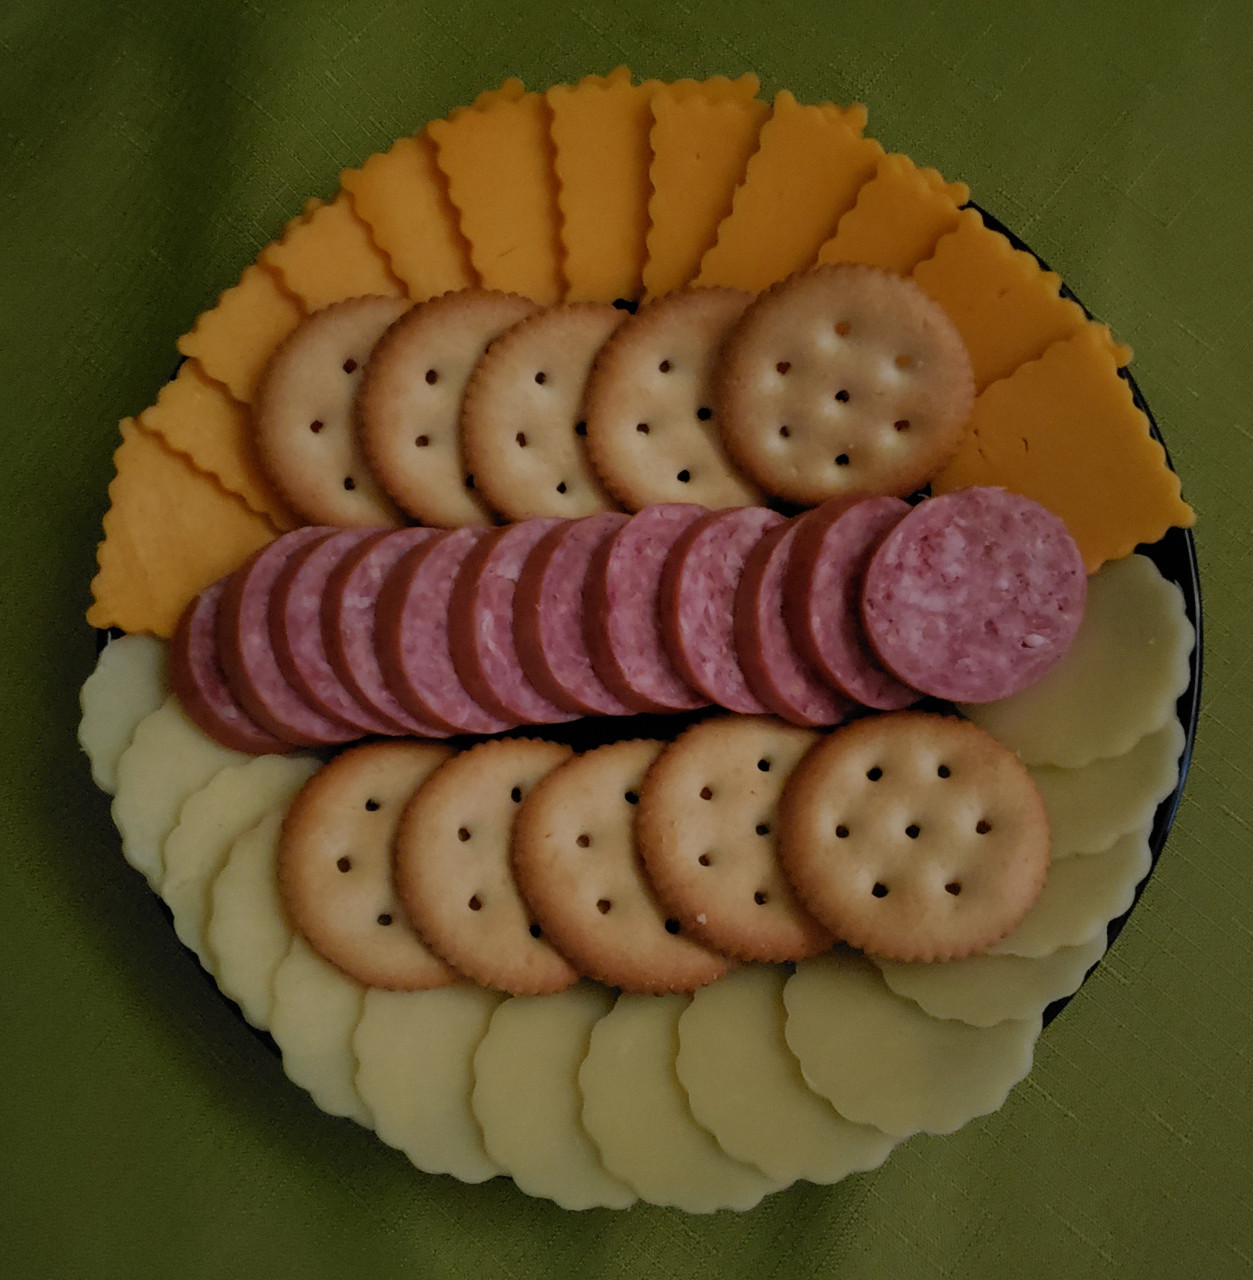 Enjoy as appetizer with cheese and crackers.